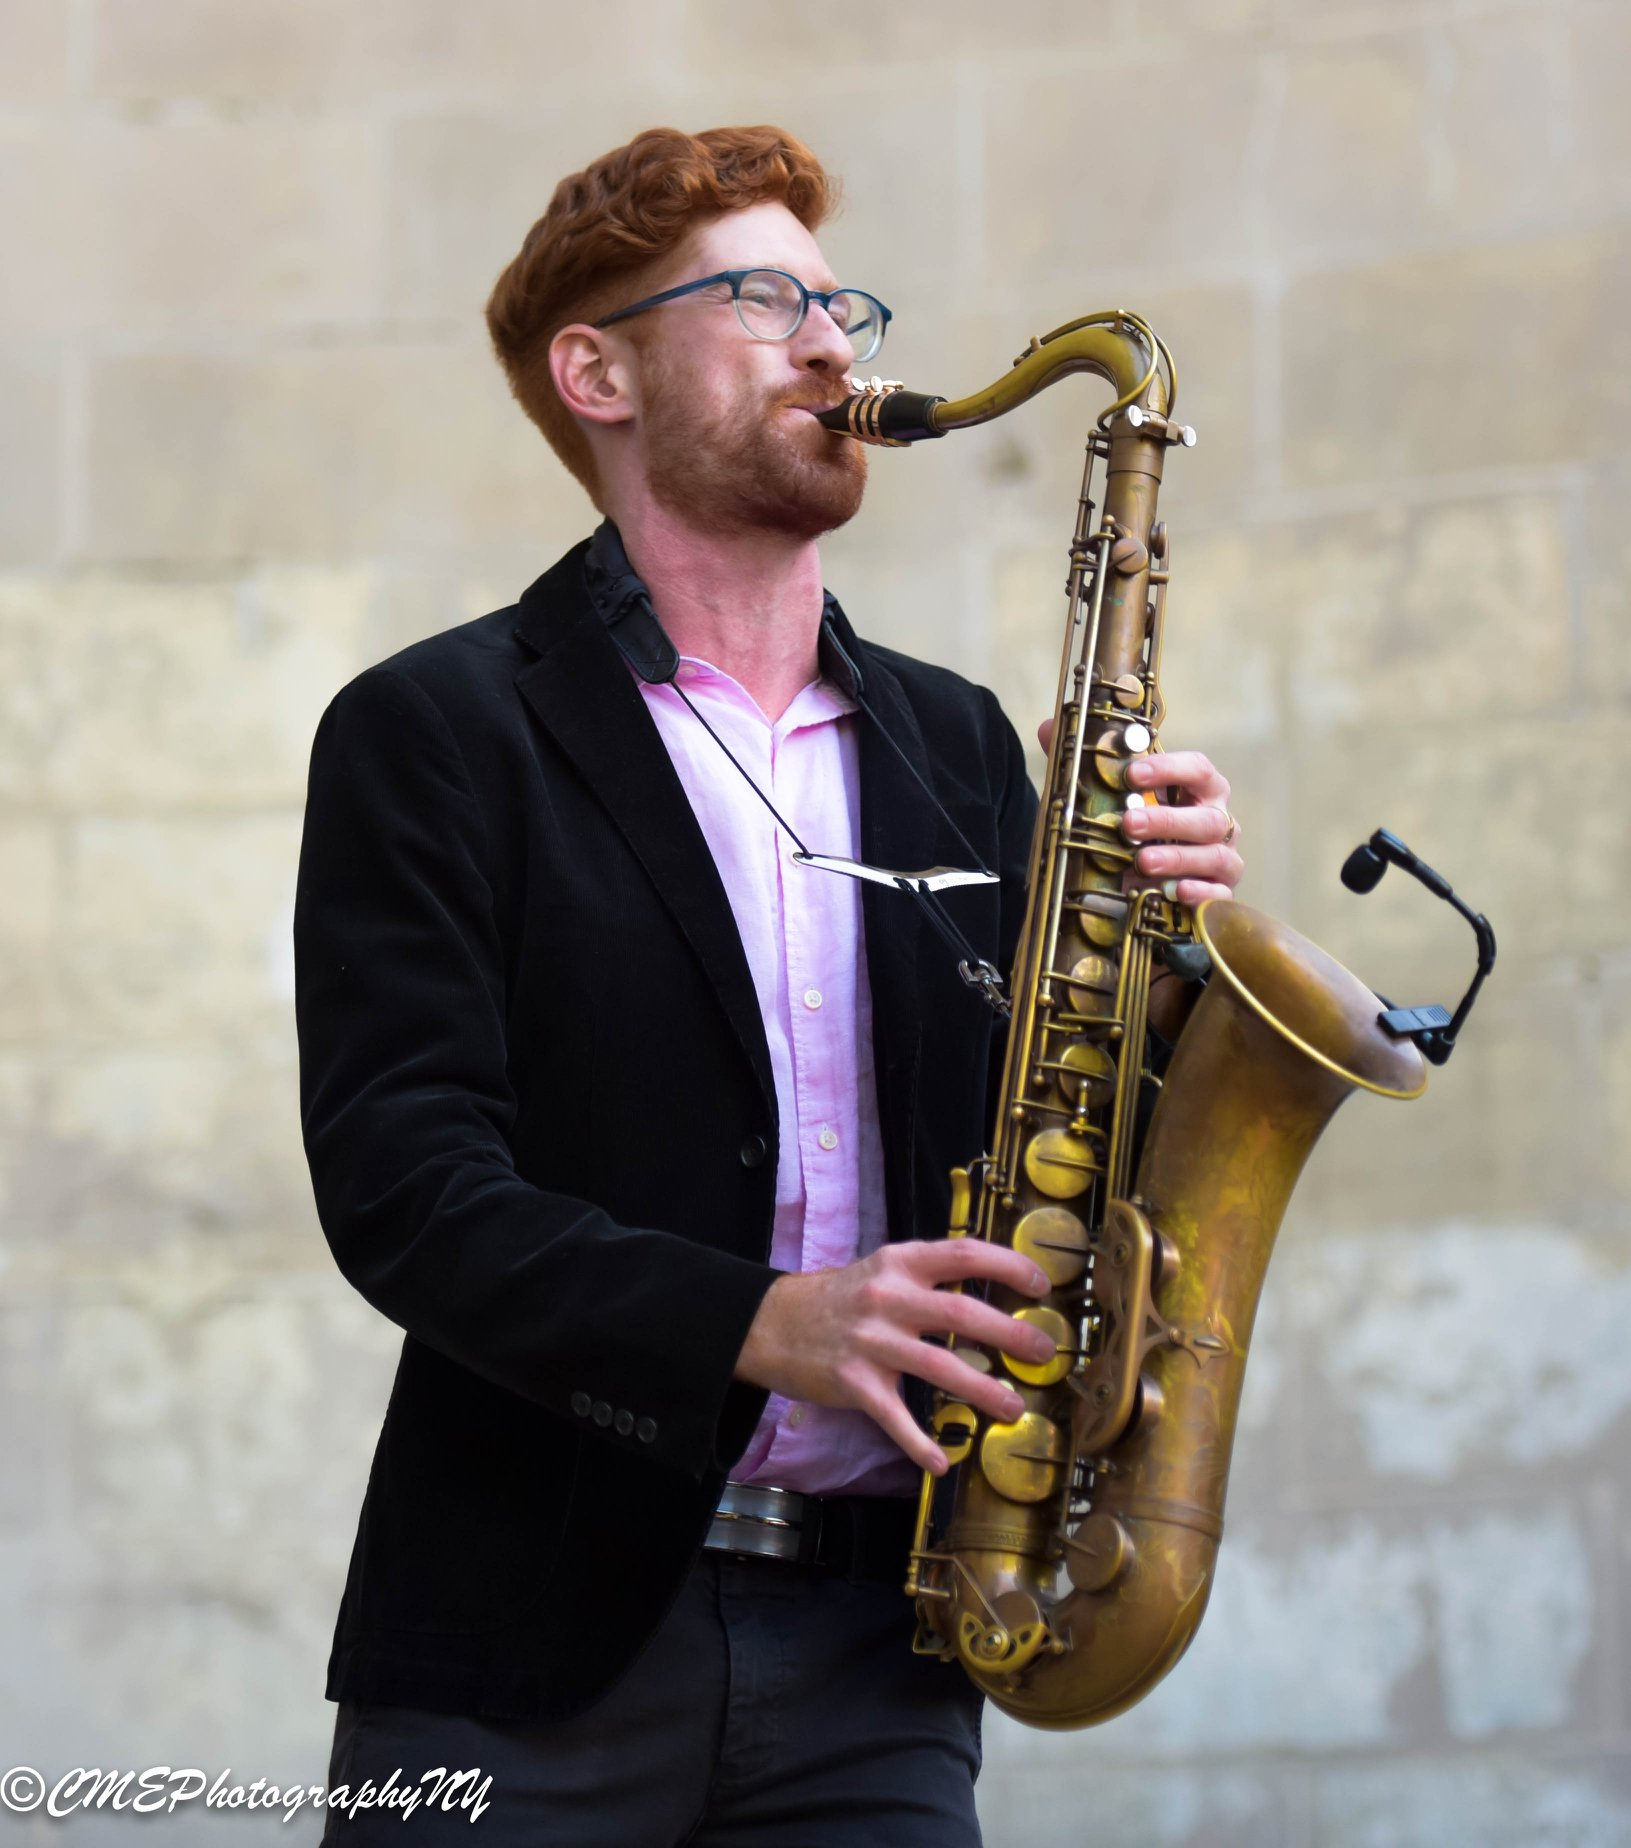 Connell Thompson, saxophonist